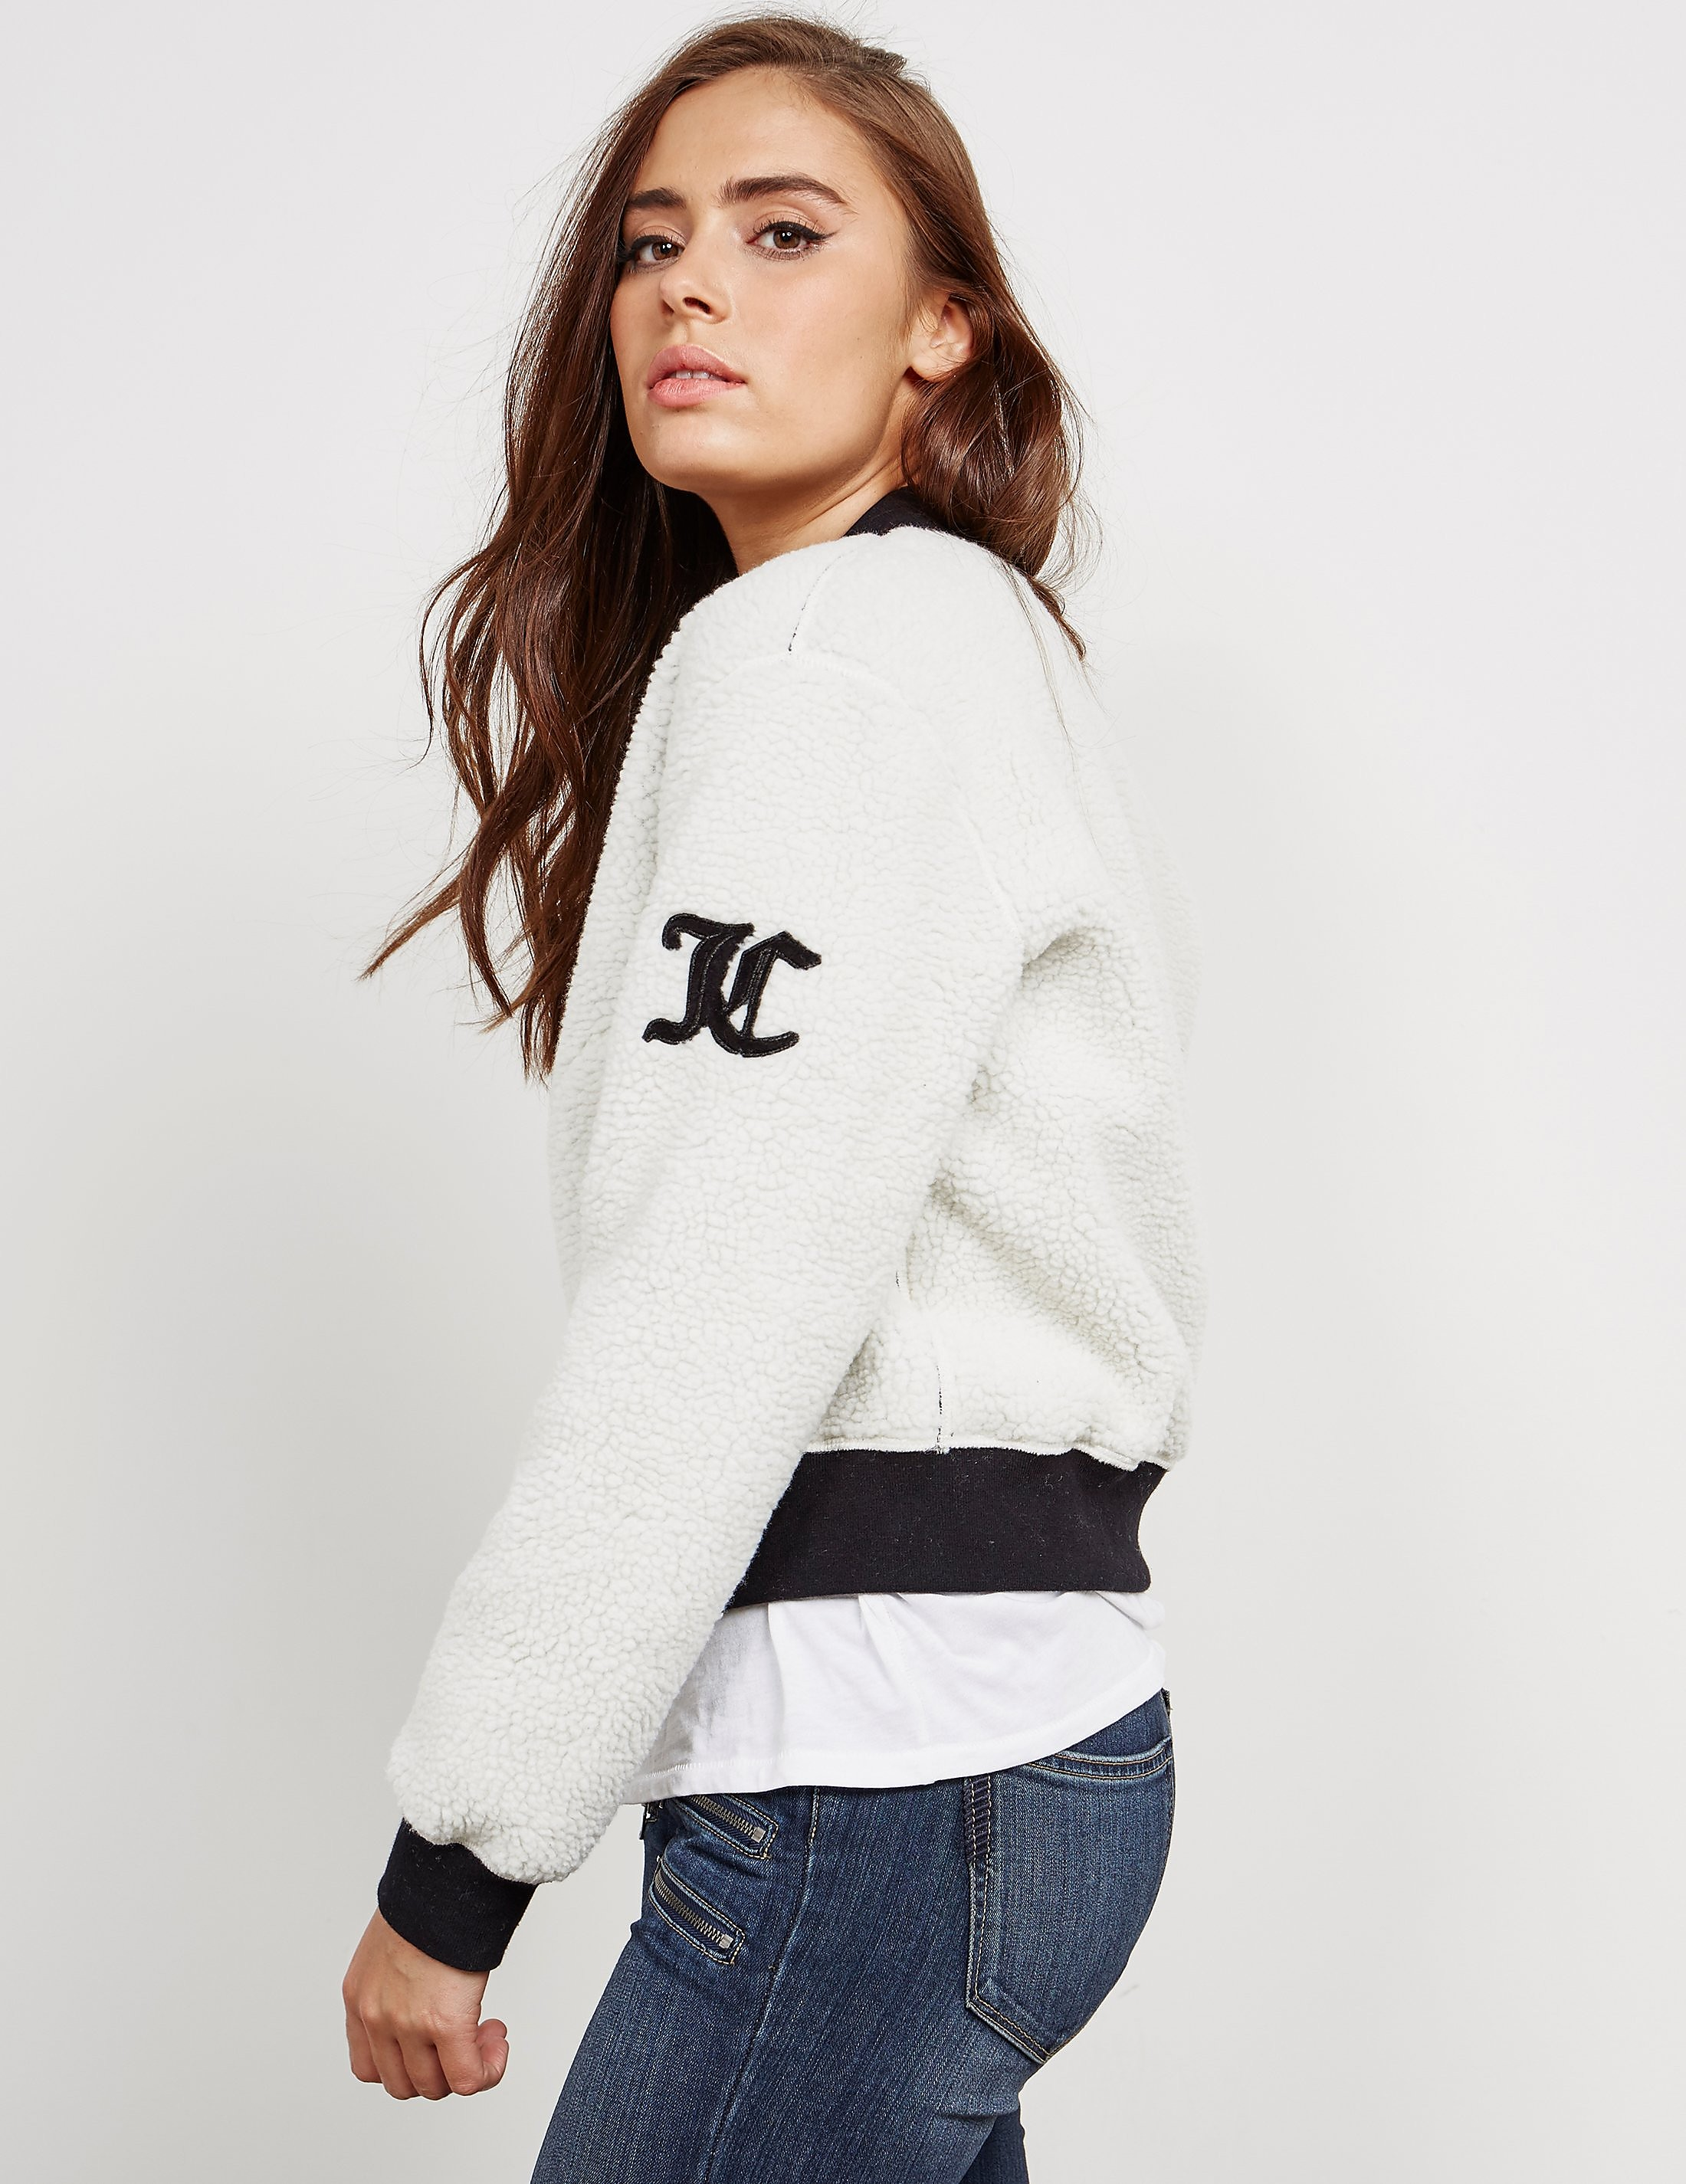 Juicy Couture Sherpa Reversible Bomber Jacket